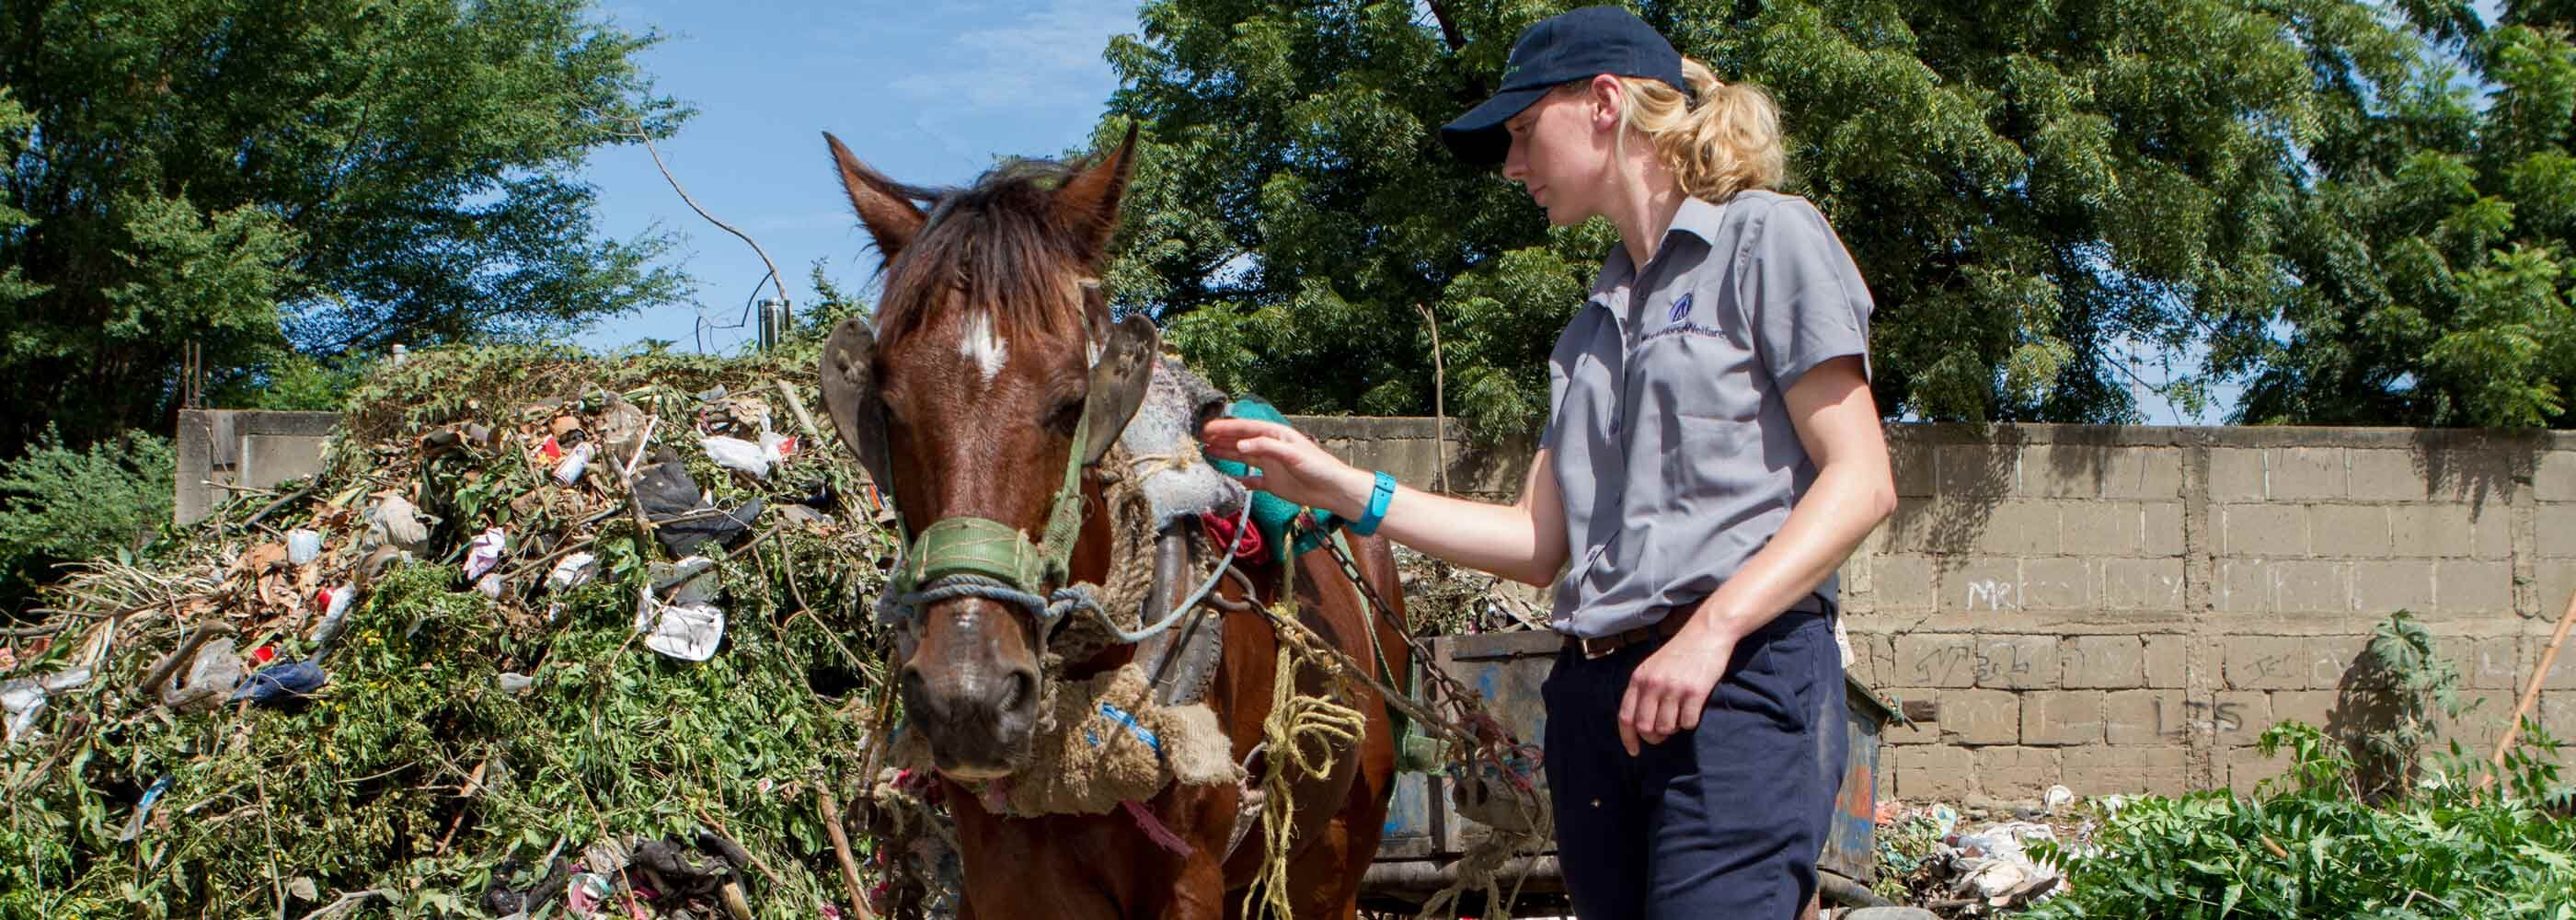 World Horse Welfare International Officer checking bay horse horse with poorly fitting harness